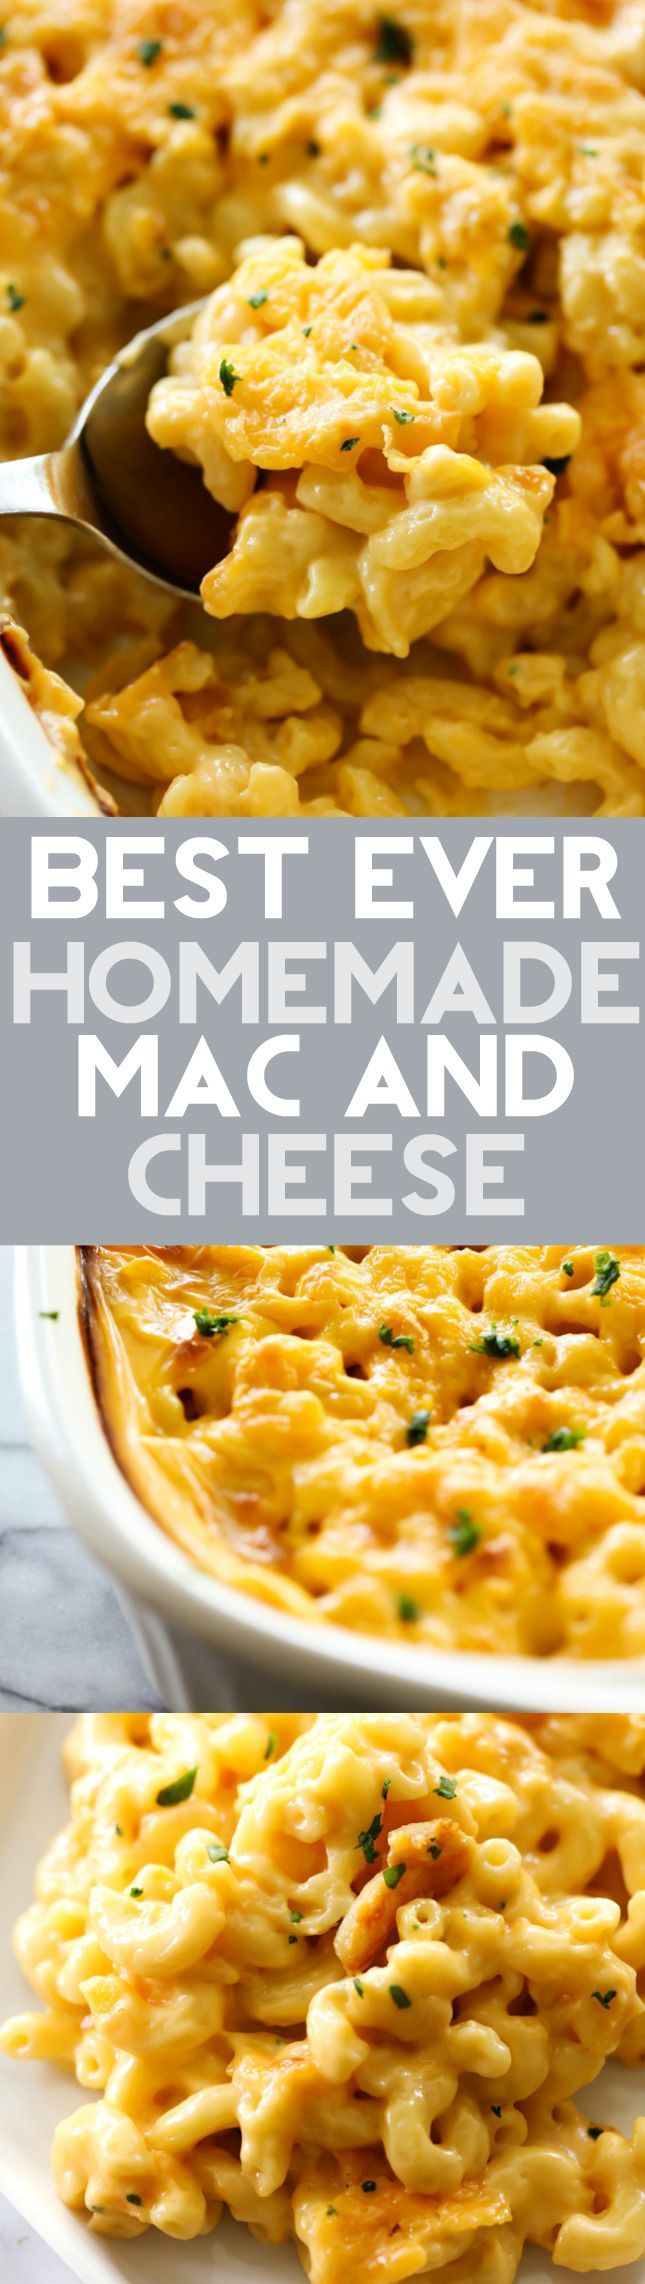 This Mac and Cheese is my mom's famous recipe. It is creamy, cheesy and completely addictive! It makes for a fabulous side dish whoever it goes and is extremely popular! There is never any left!